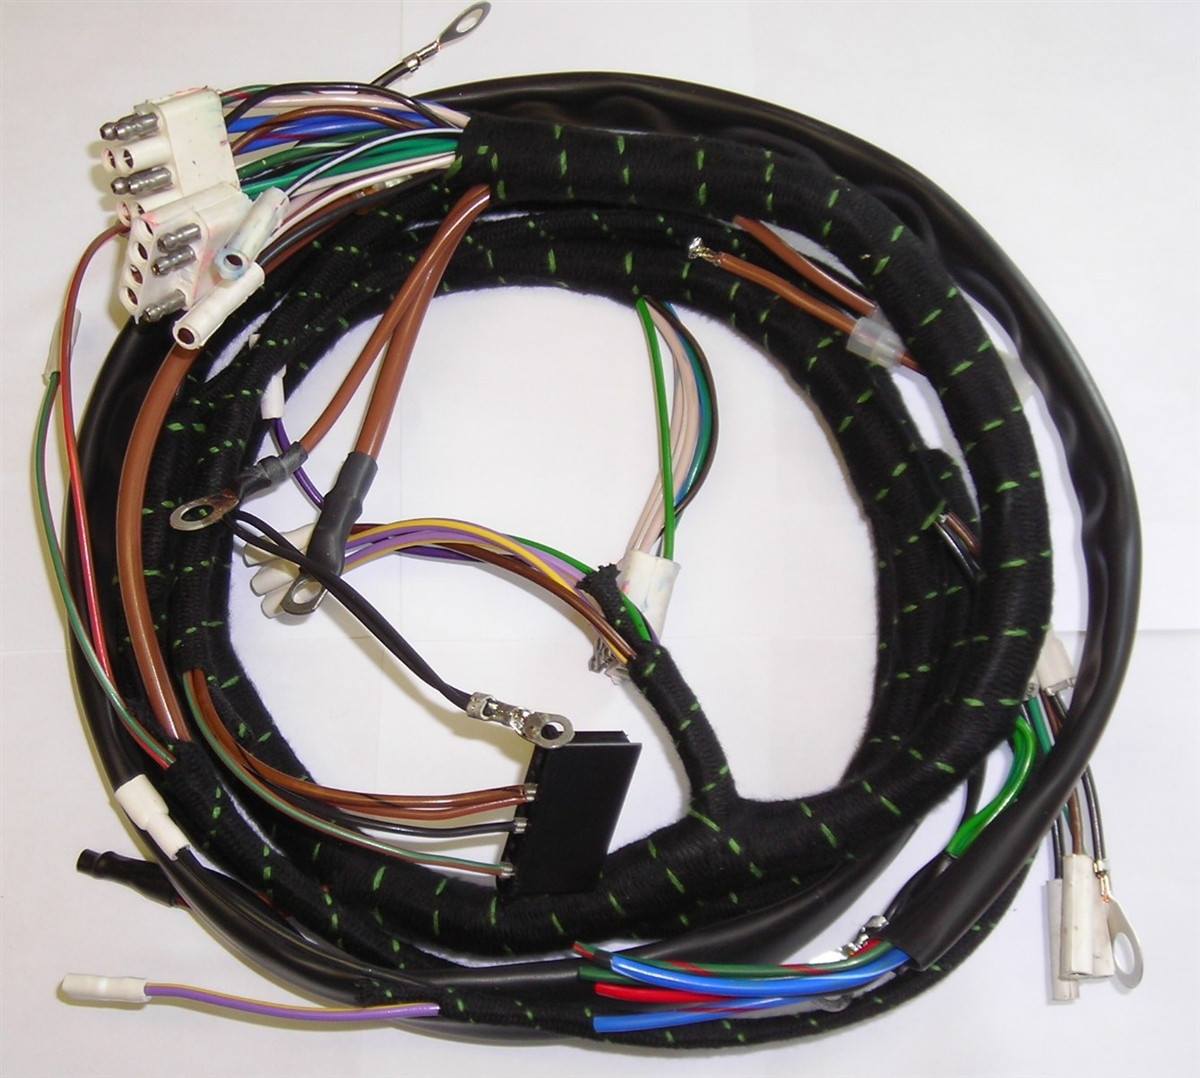 1309 2?1353488239 xke forward wiring harness jaguar wiring harness at readyjetset.co